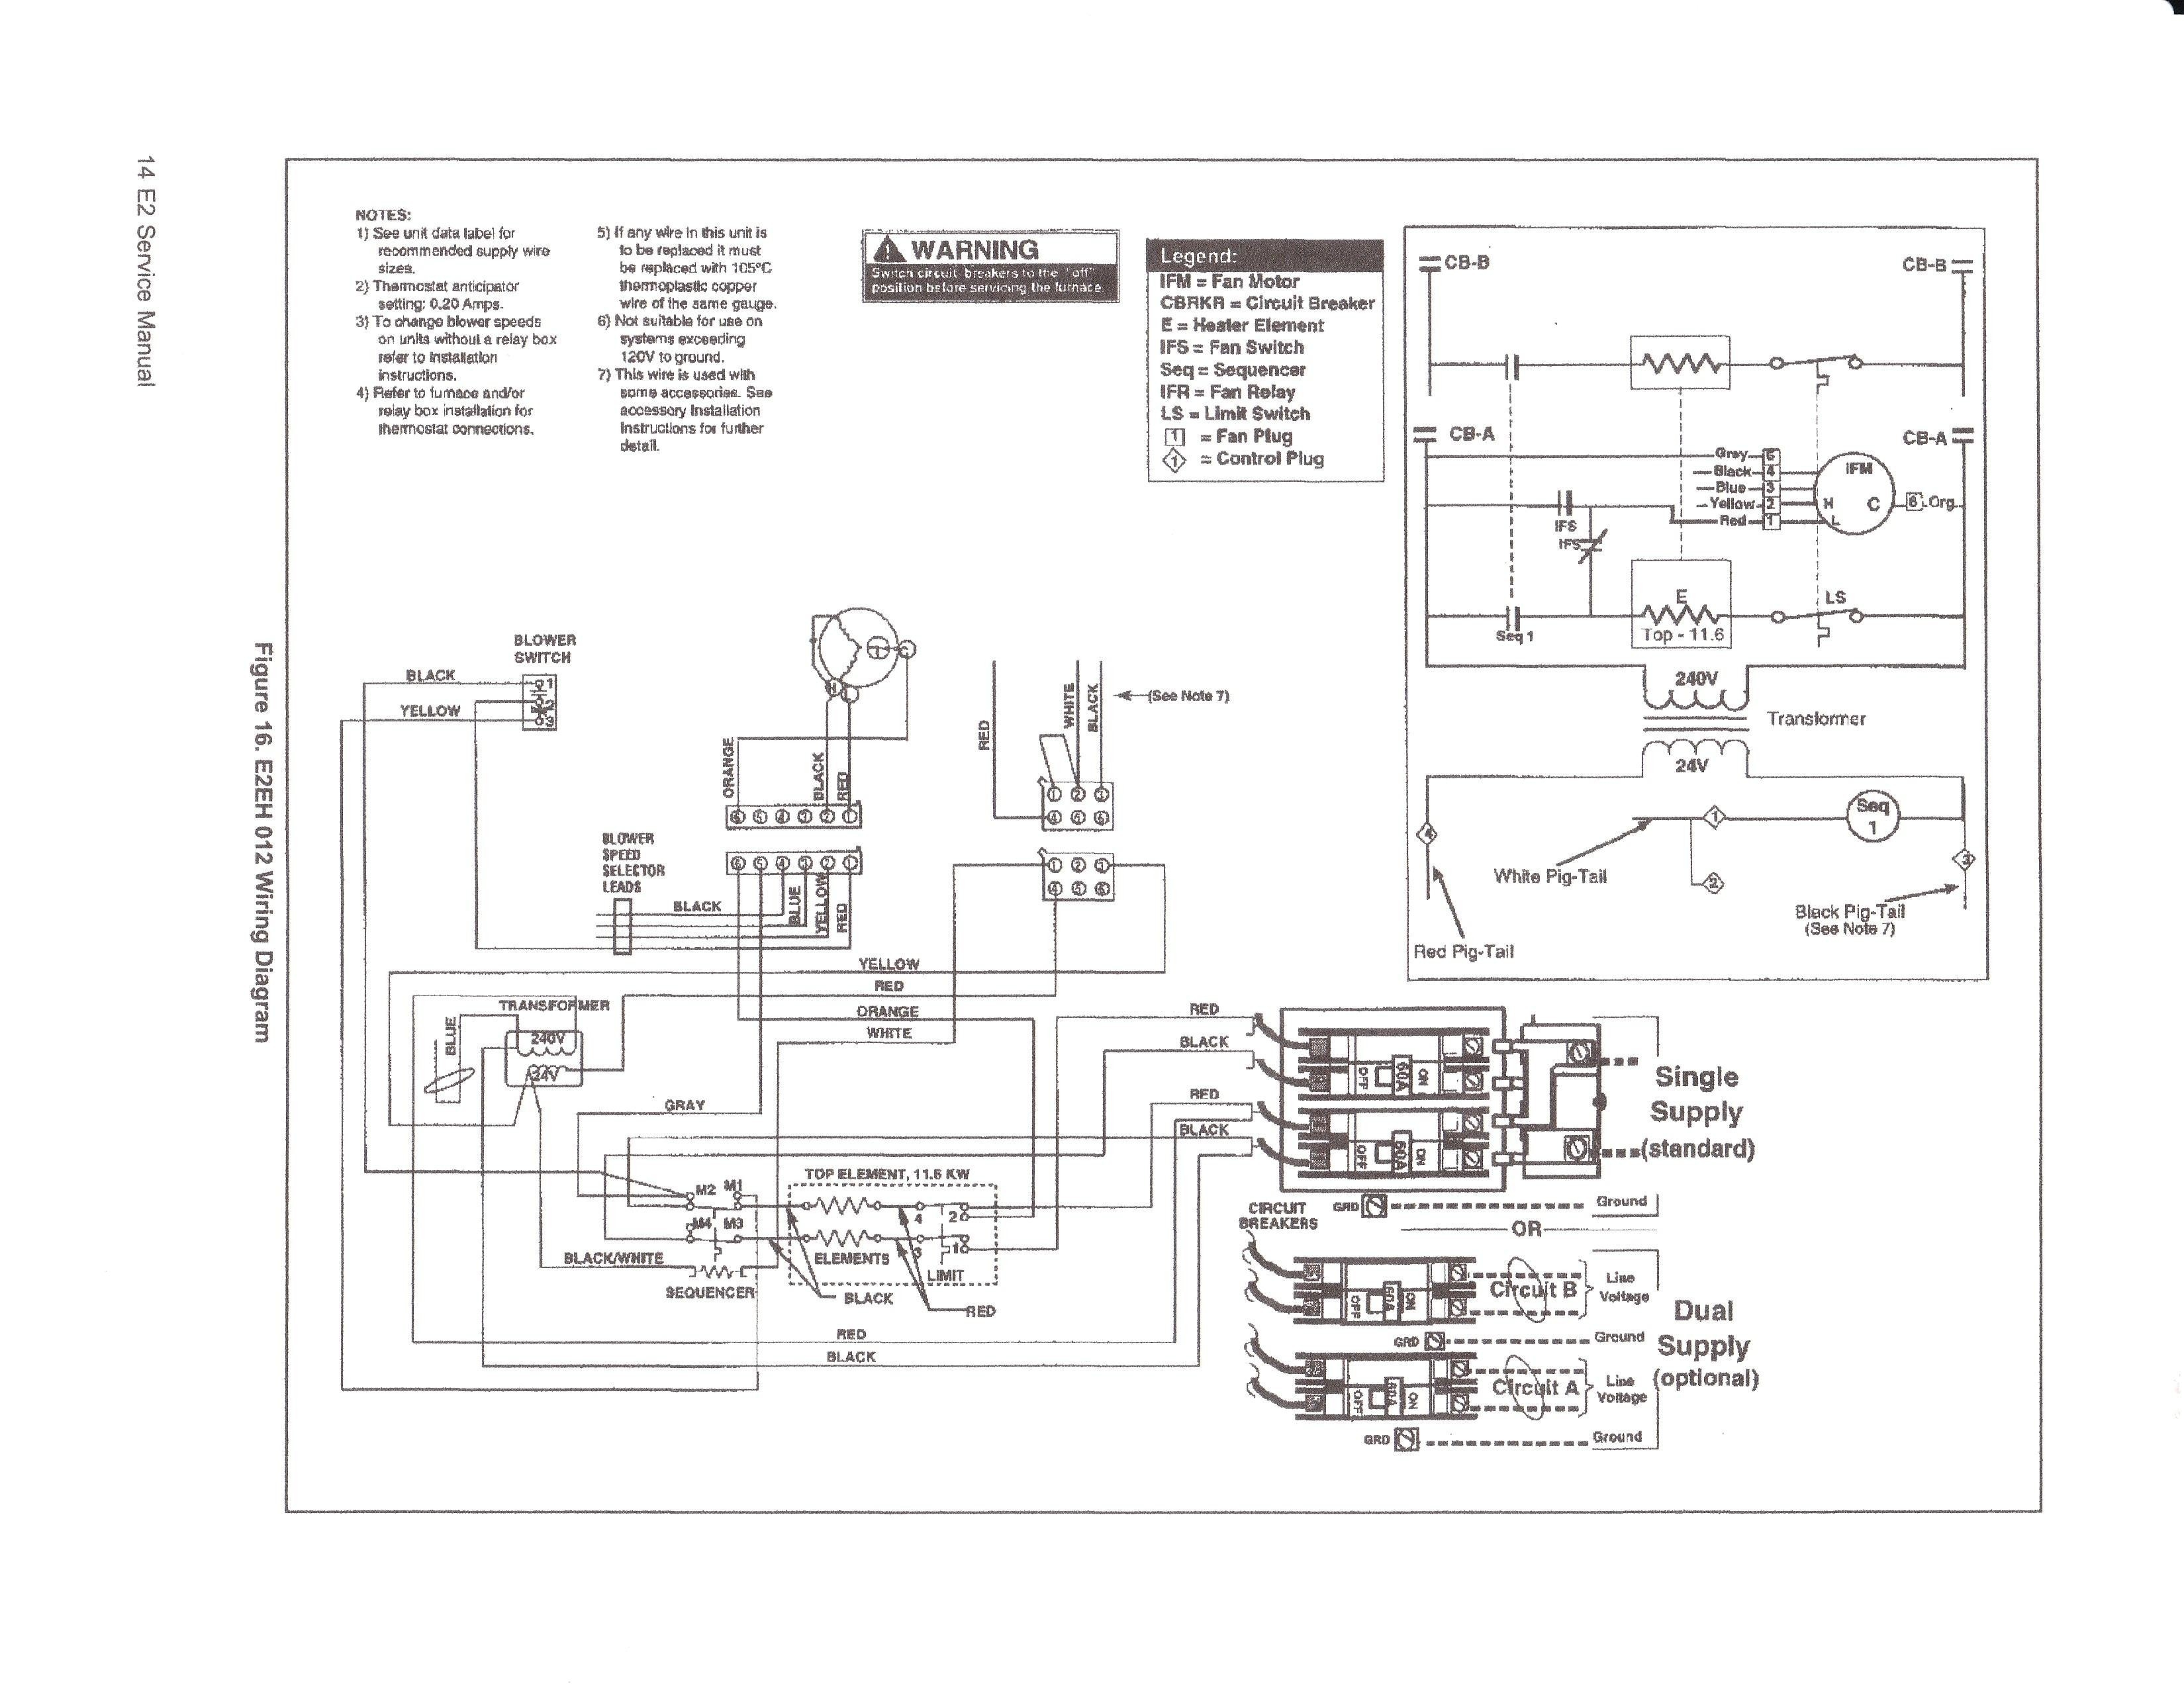 eb15b electric furnace wiring diagrams central electric furnace eb15b wiring diagram | free wiring diagram